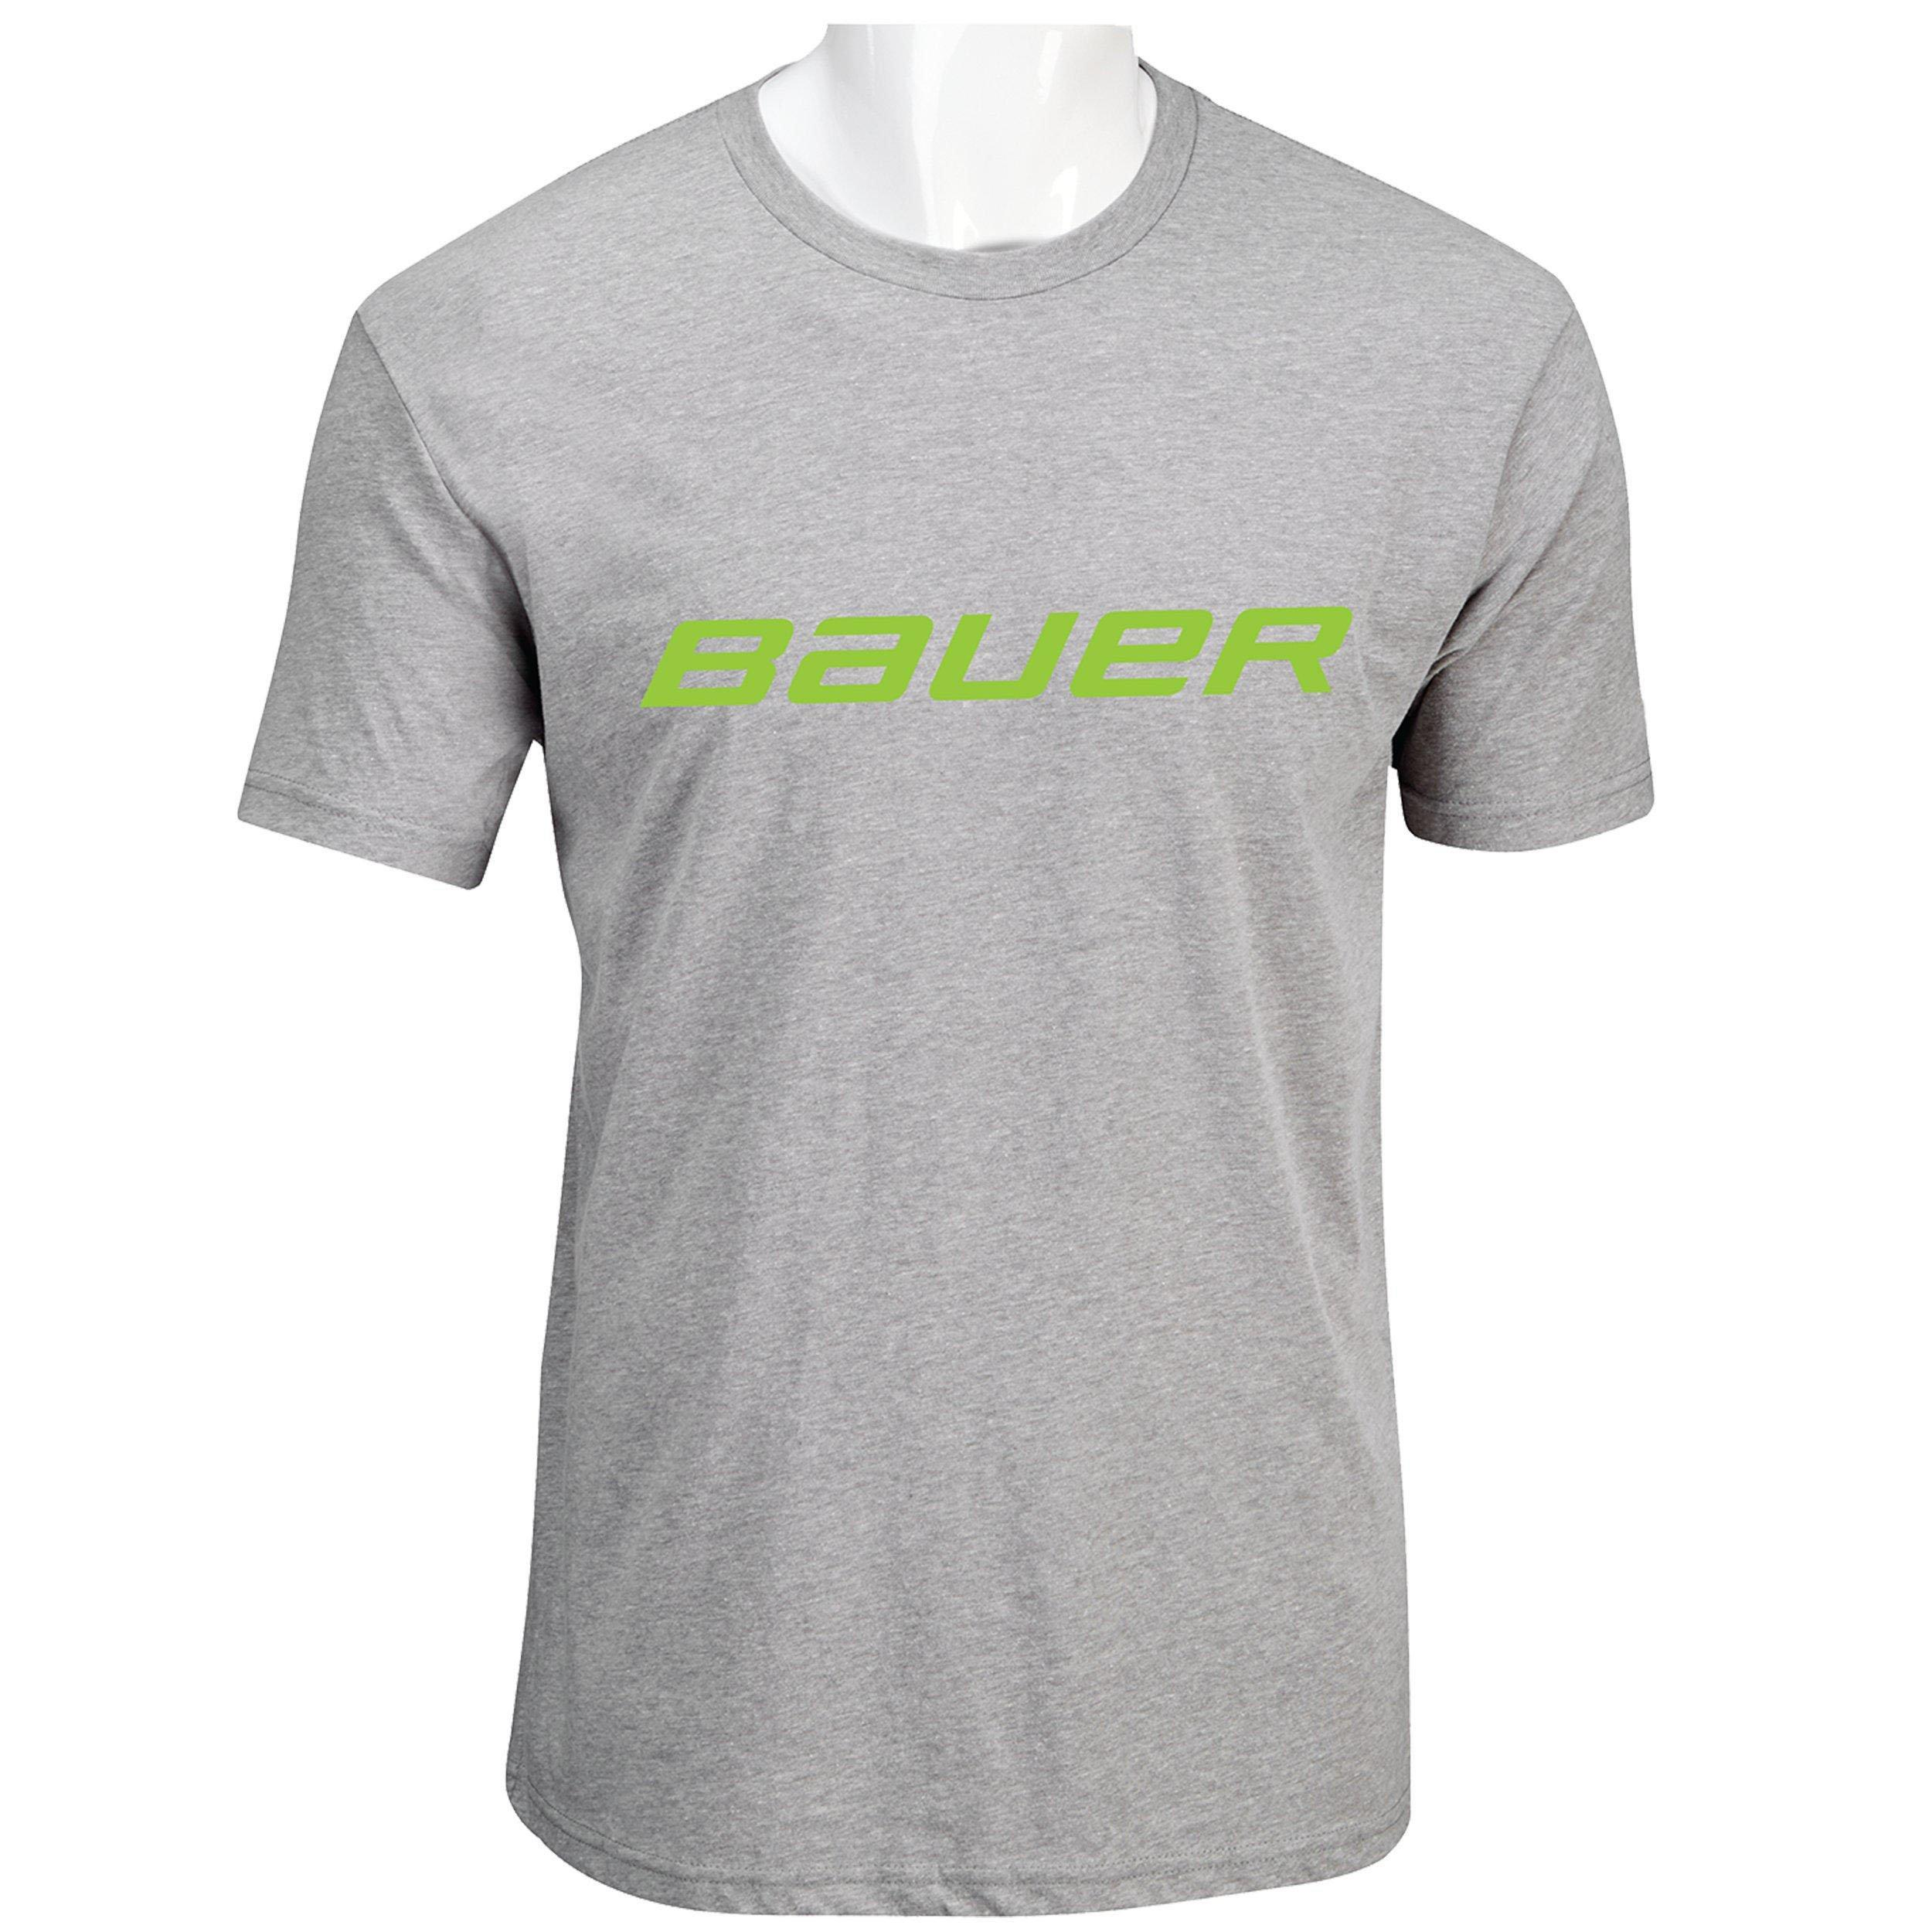 BAUER Core Short Sleeve Tee Color Pop Youth - Lime,,moyen